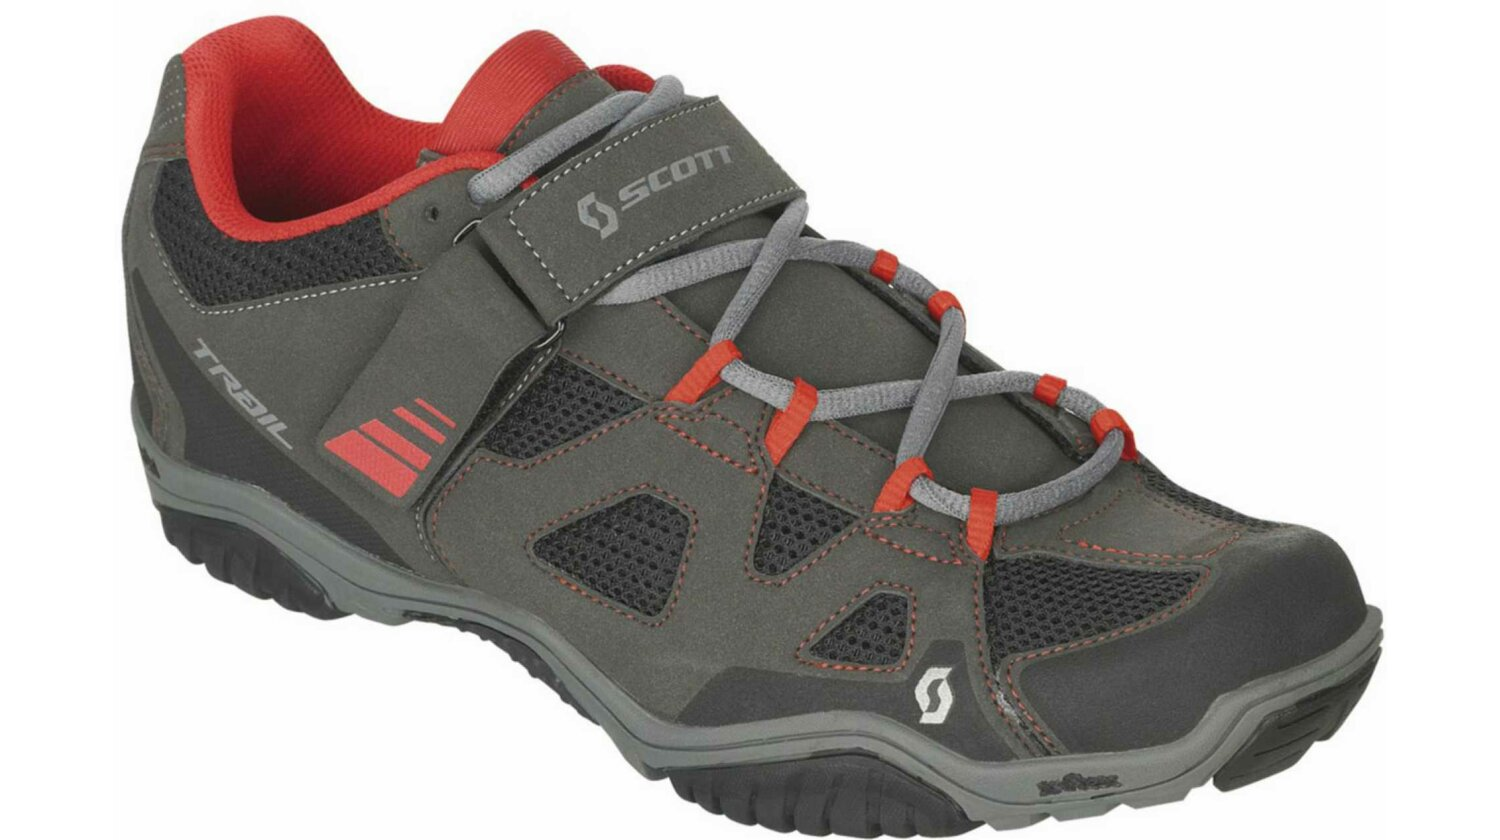 Scott Trail Evo Schuh black/red 43